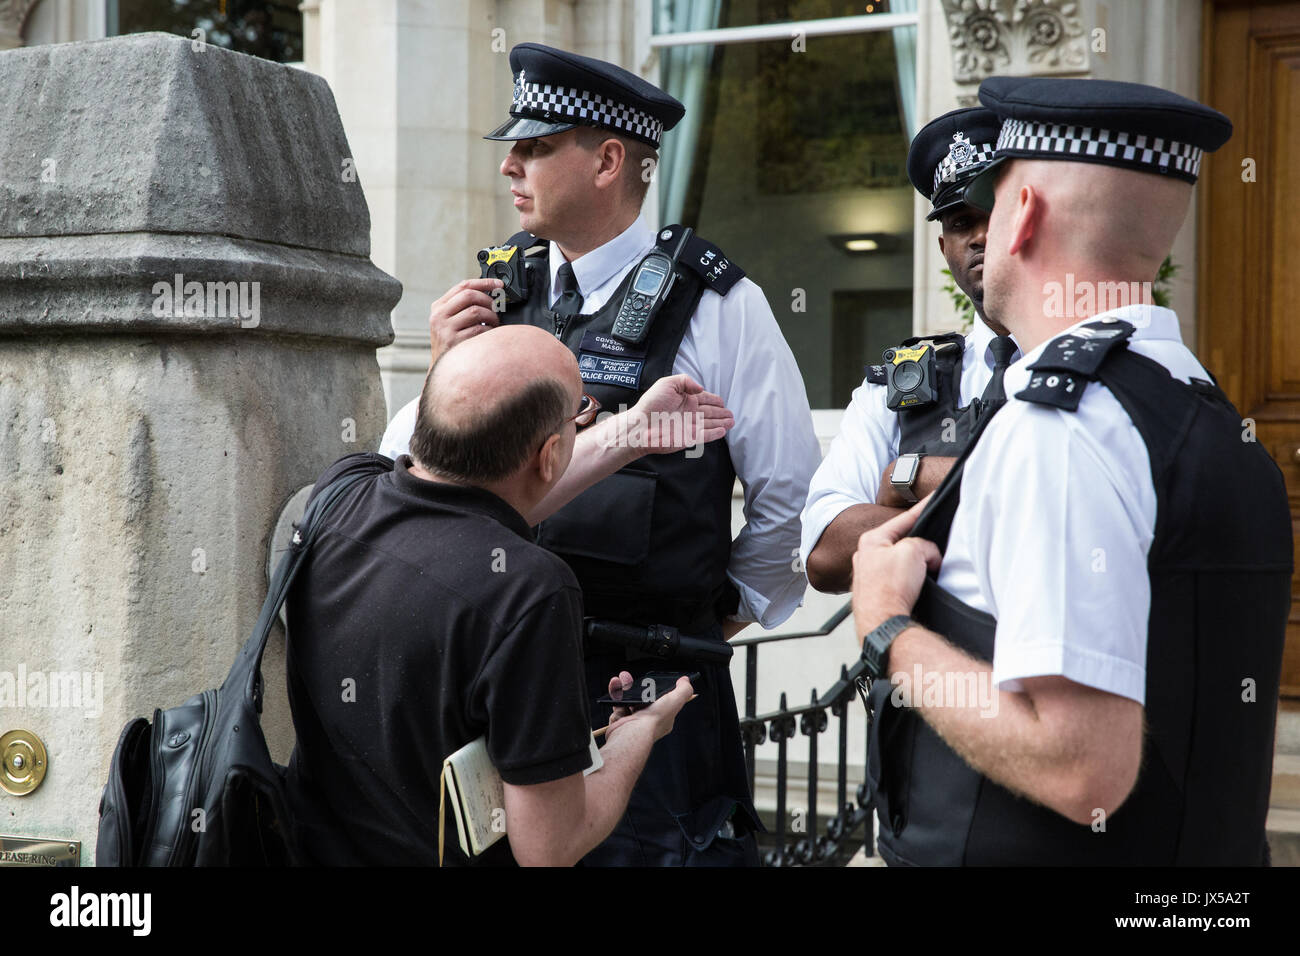 London, UK. 14th August, 2017. A journalist is refused admission to the AGM of British mining company Vedanta. Credit: Mark Kerrison/Alamy Live News - Stock Image